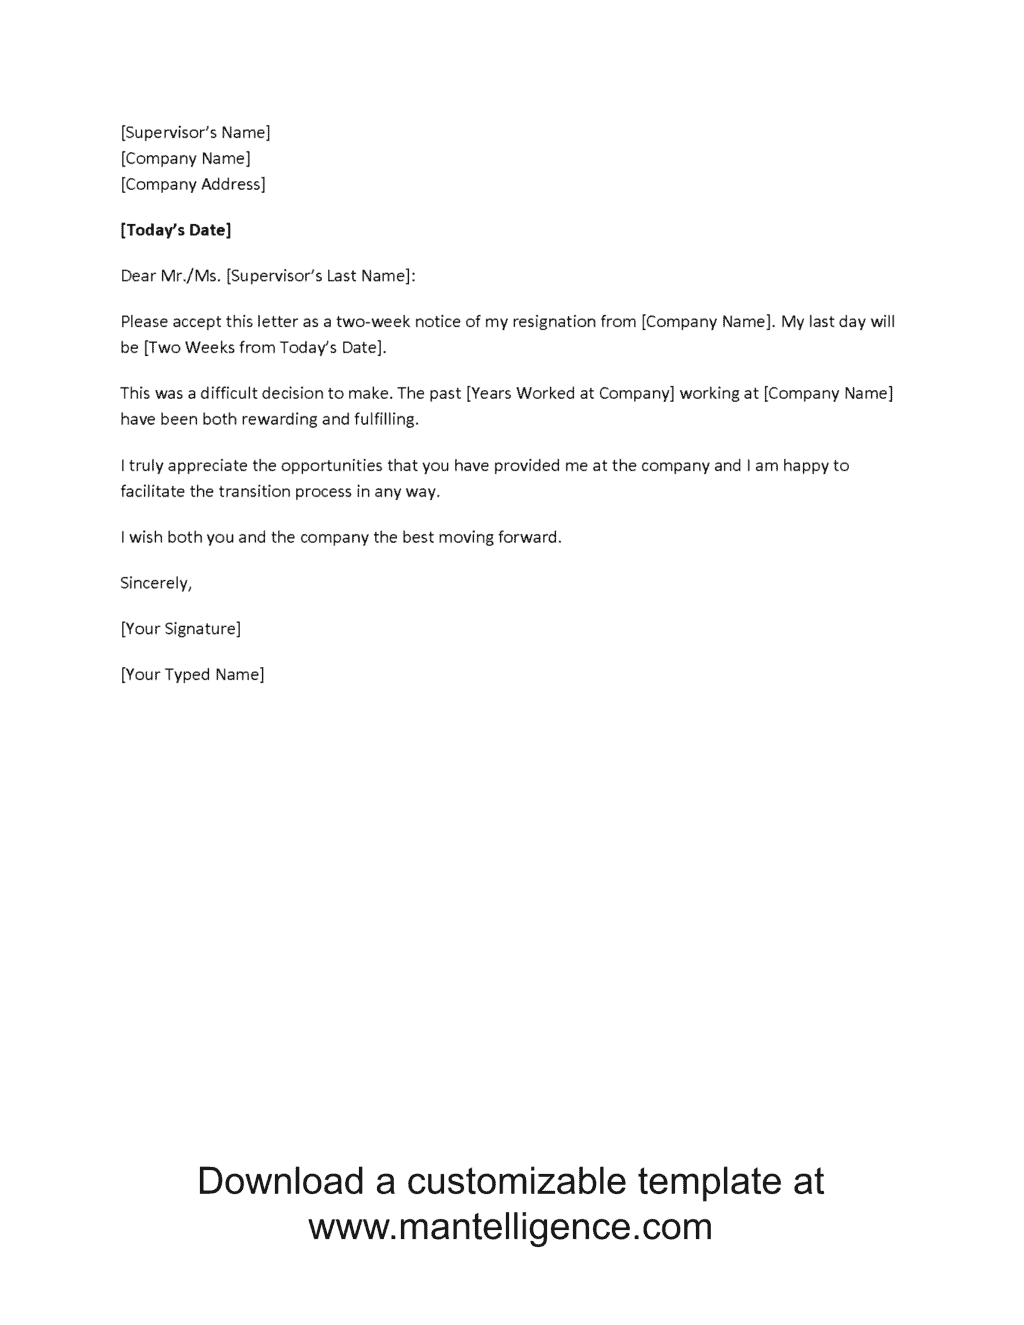 Highly Professional Two Weeks Notice Letter Templates FCtmCBL3